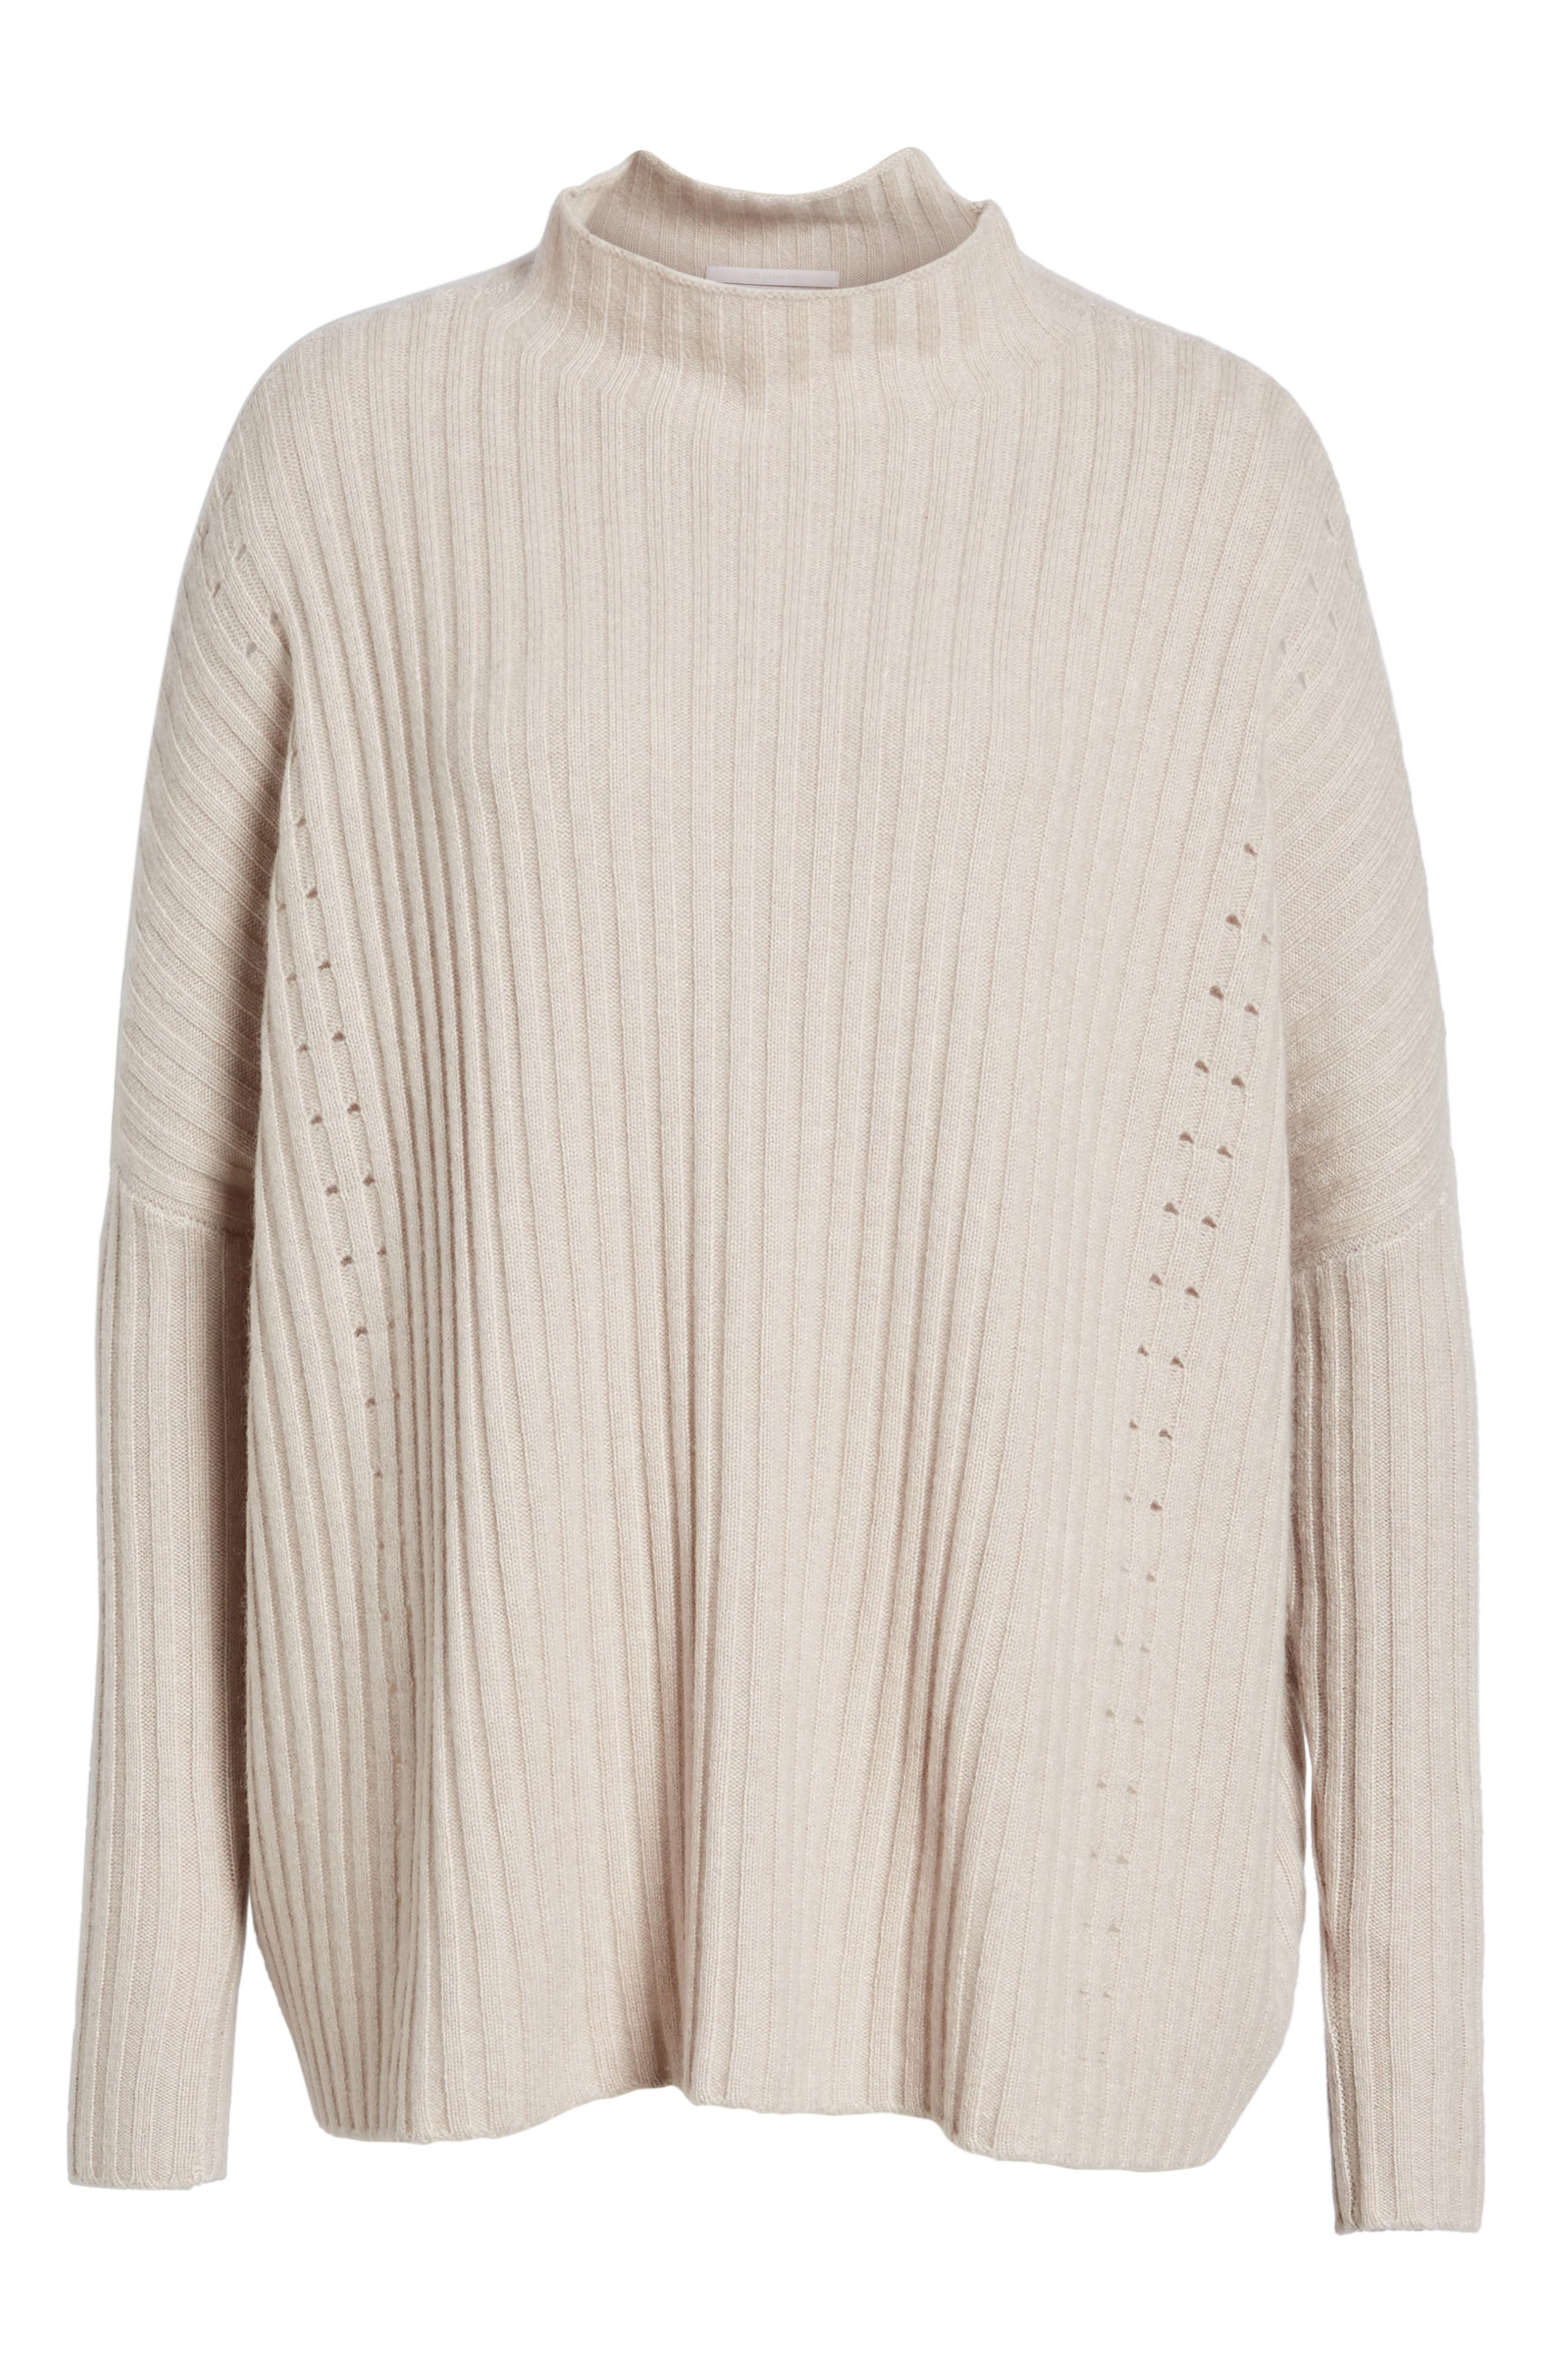 Boxy Ribbed Cashmere Sweater,                             Alternate thumbnail 6, color,                             270